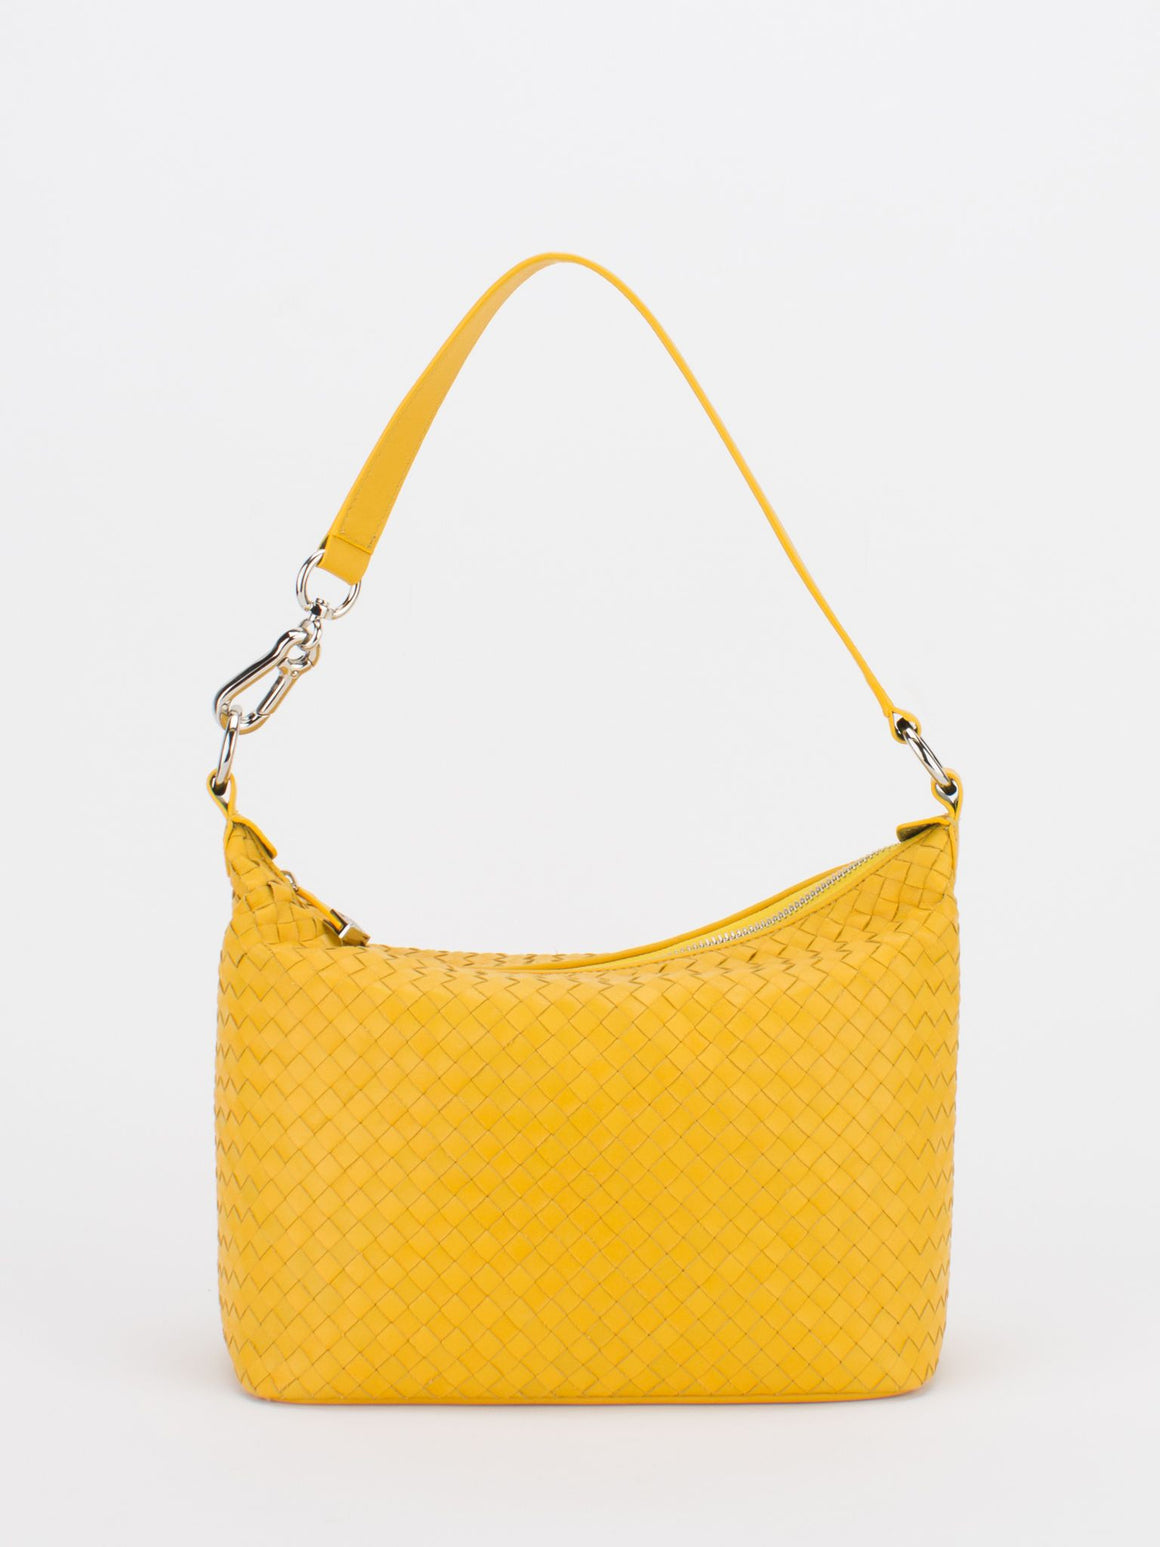 VENUS Woven Leather Hobo - Sunflower